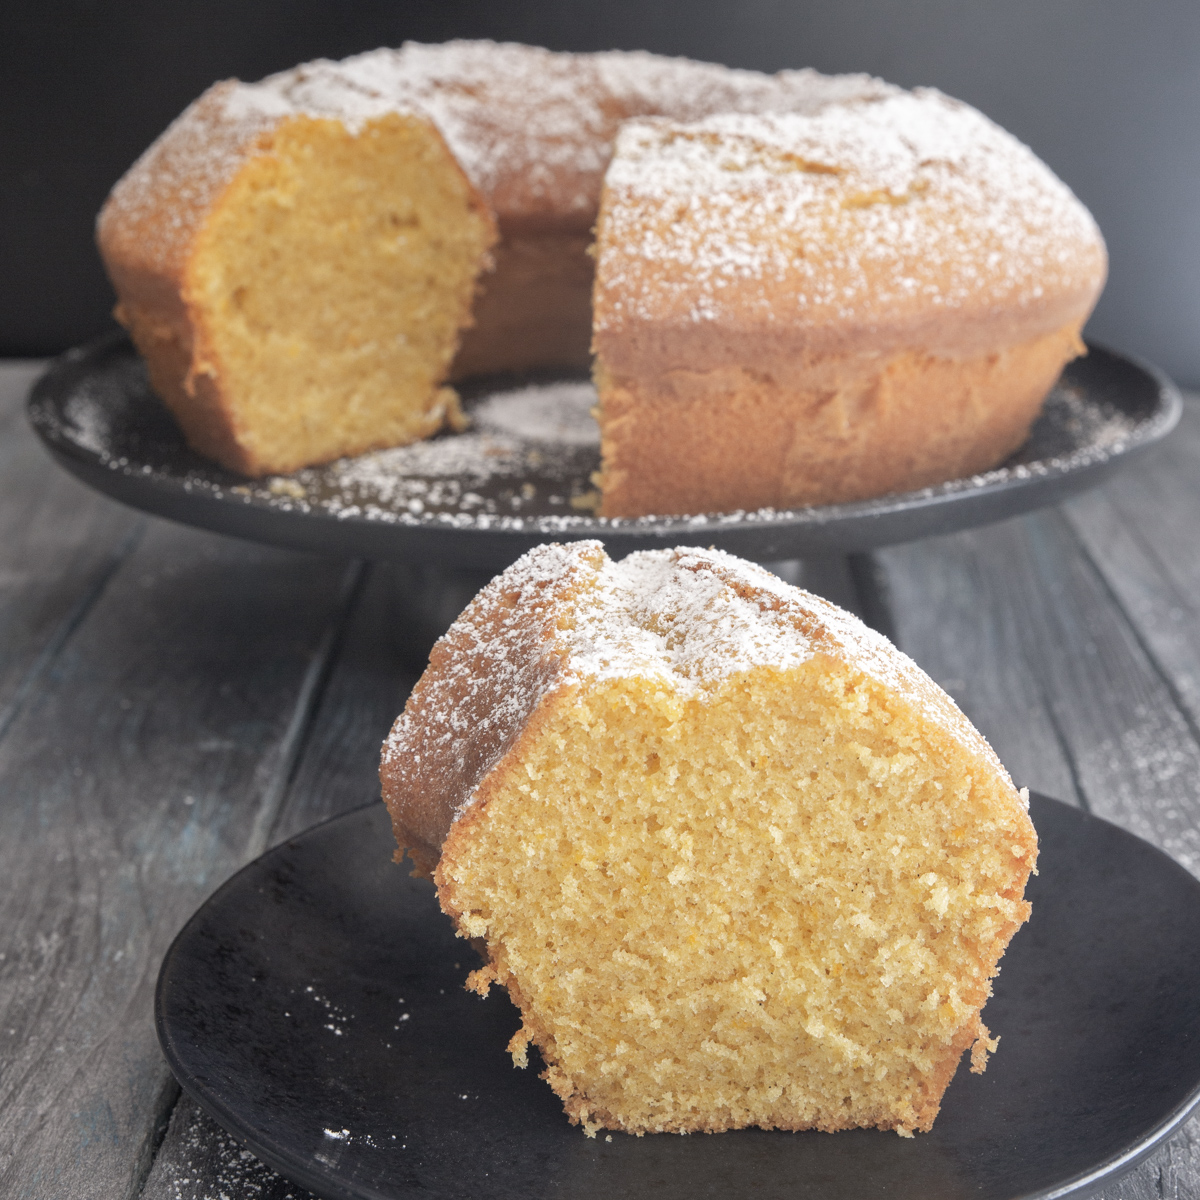 Bundt cake on a black stand with a slice cut.